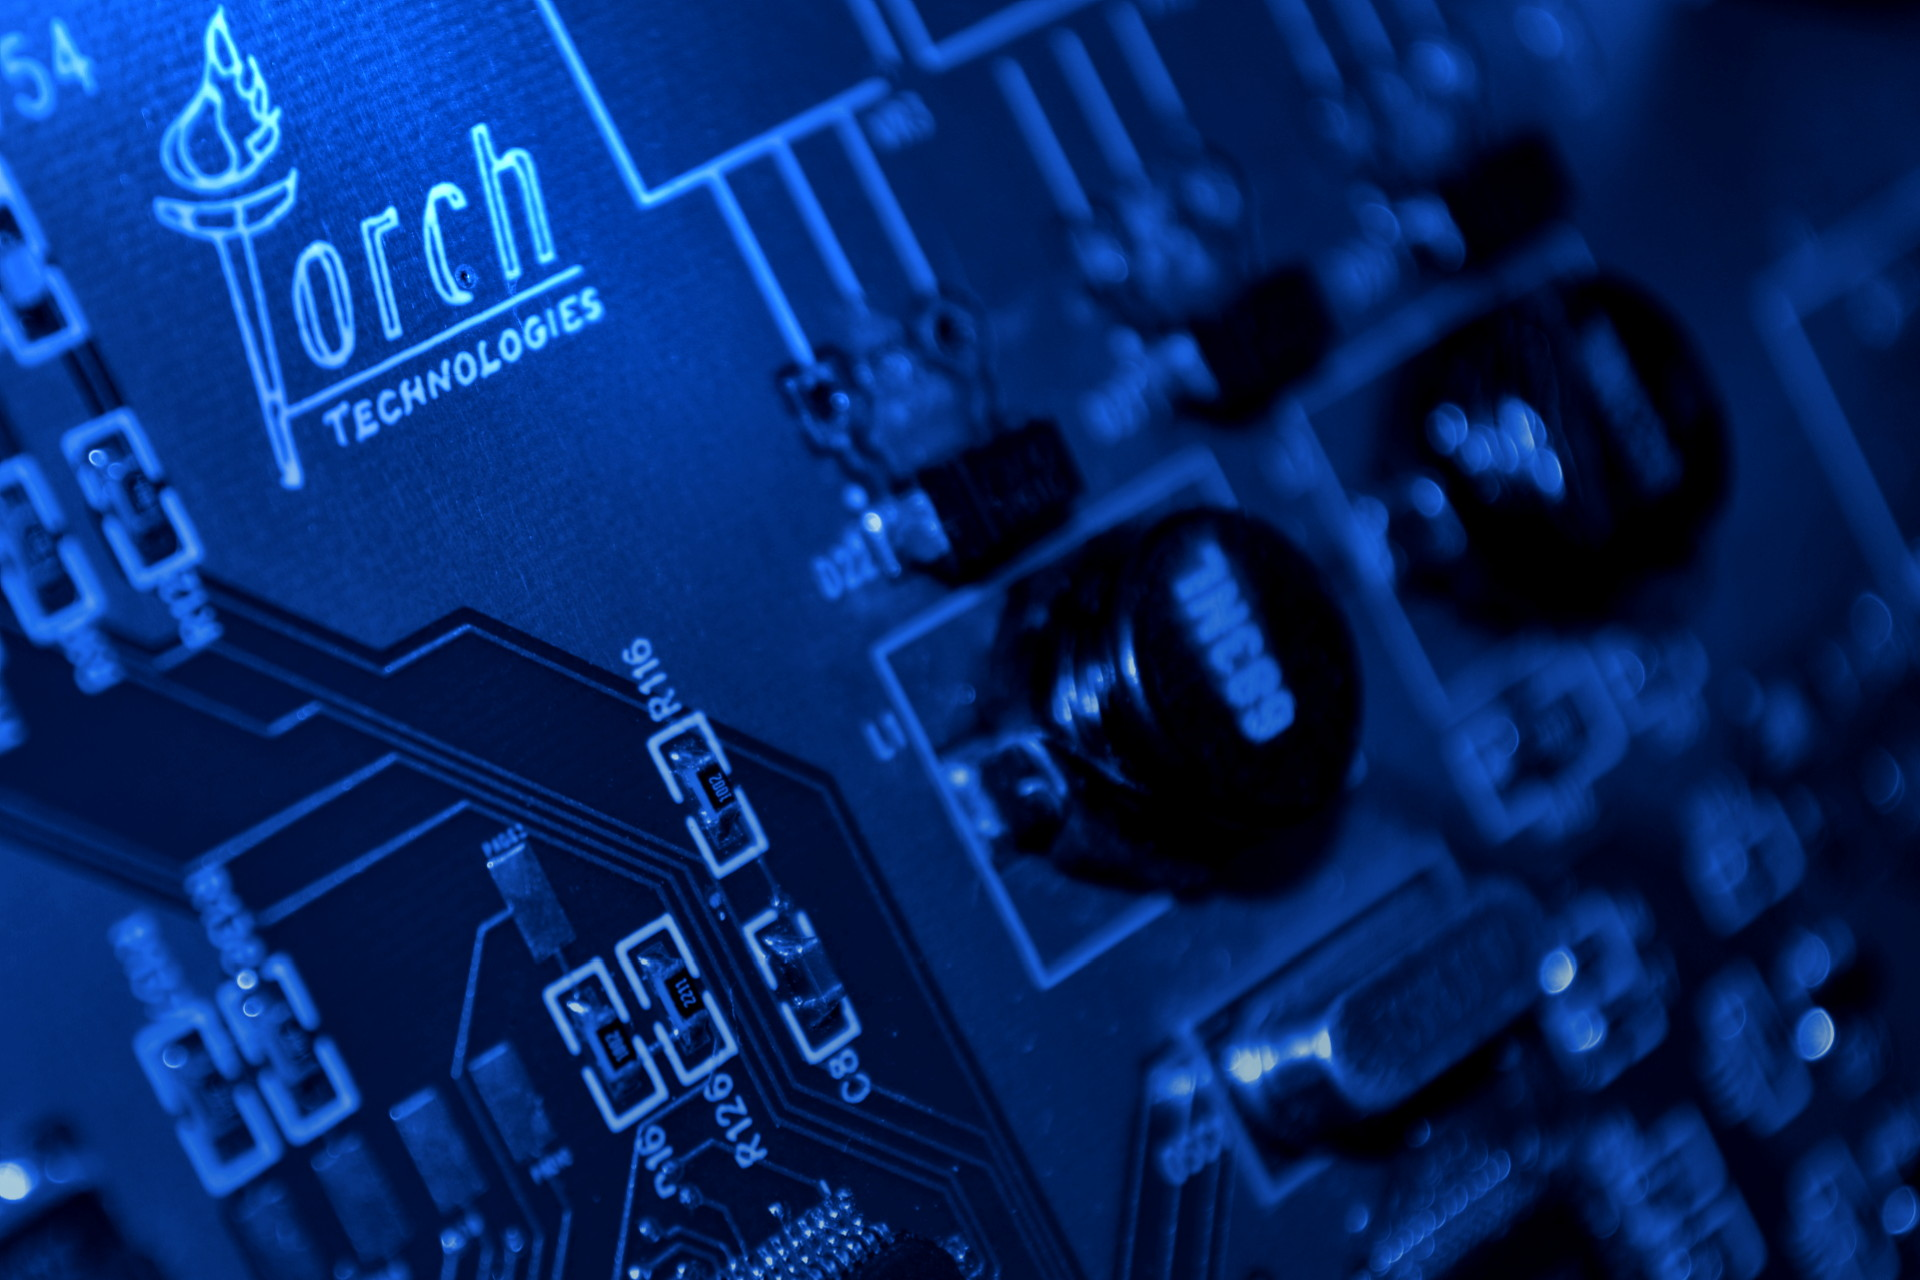 Engineering Design Torch Technologies Structural Analysis Of Printed Circuit Board Systems Mechanical